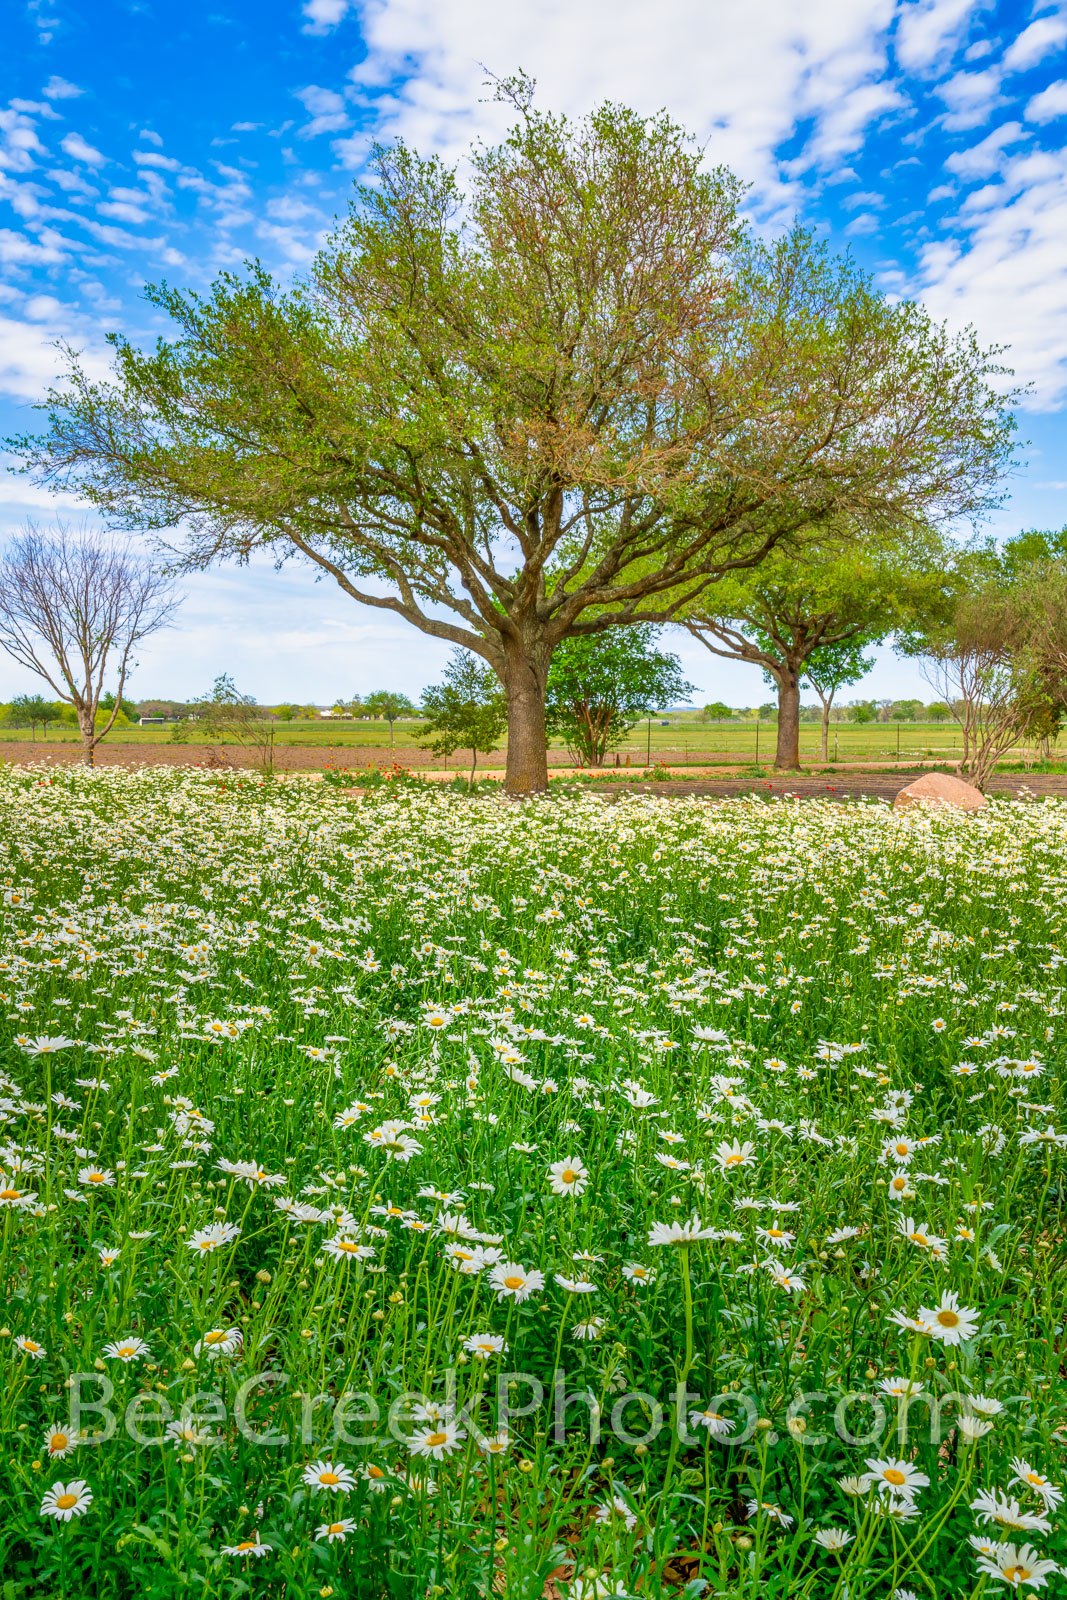 Field of Daisy Wildflowers Vertical - This was a great field of ox-eyed daisy wildflowers with just a few trees and a nice blue...